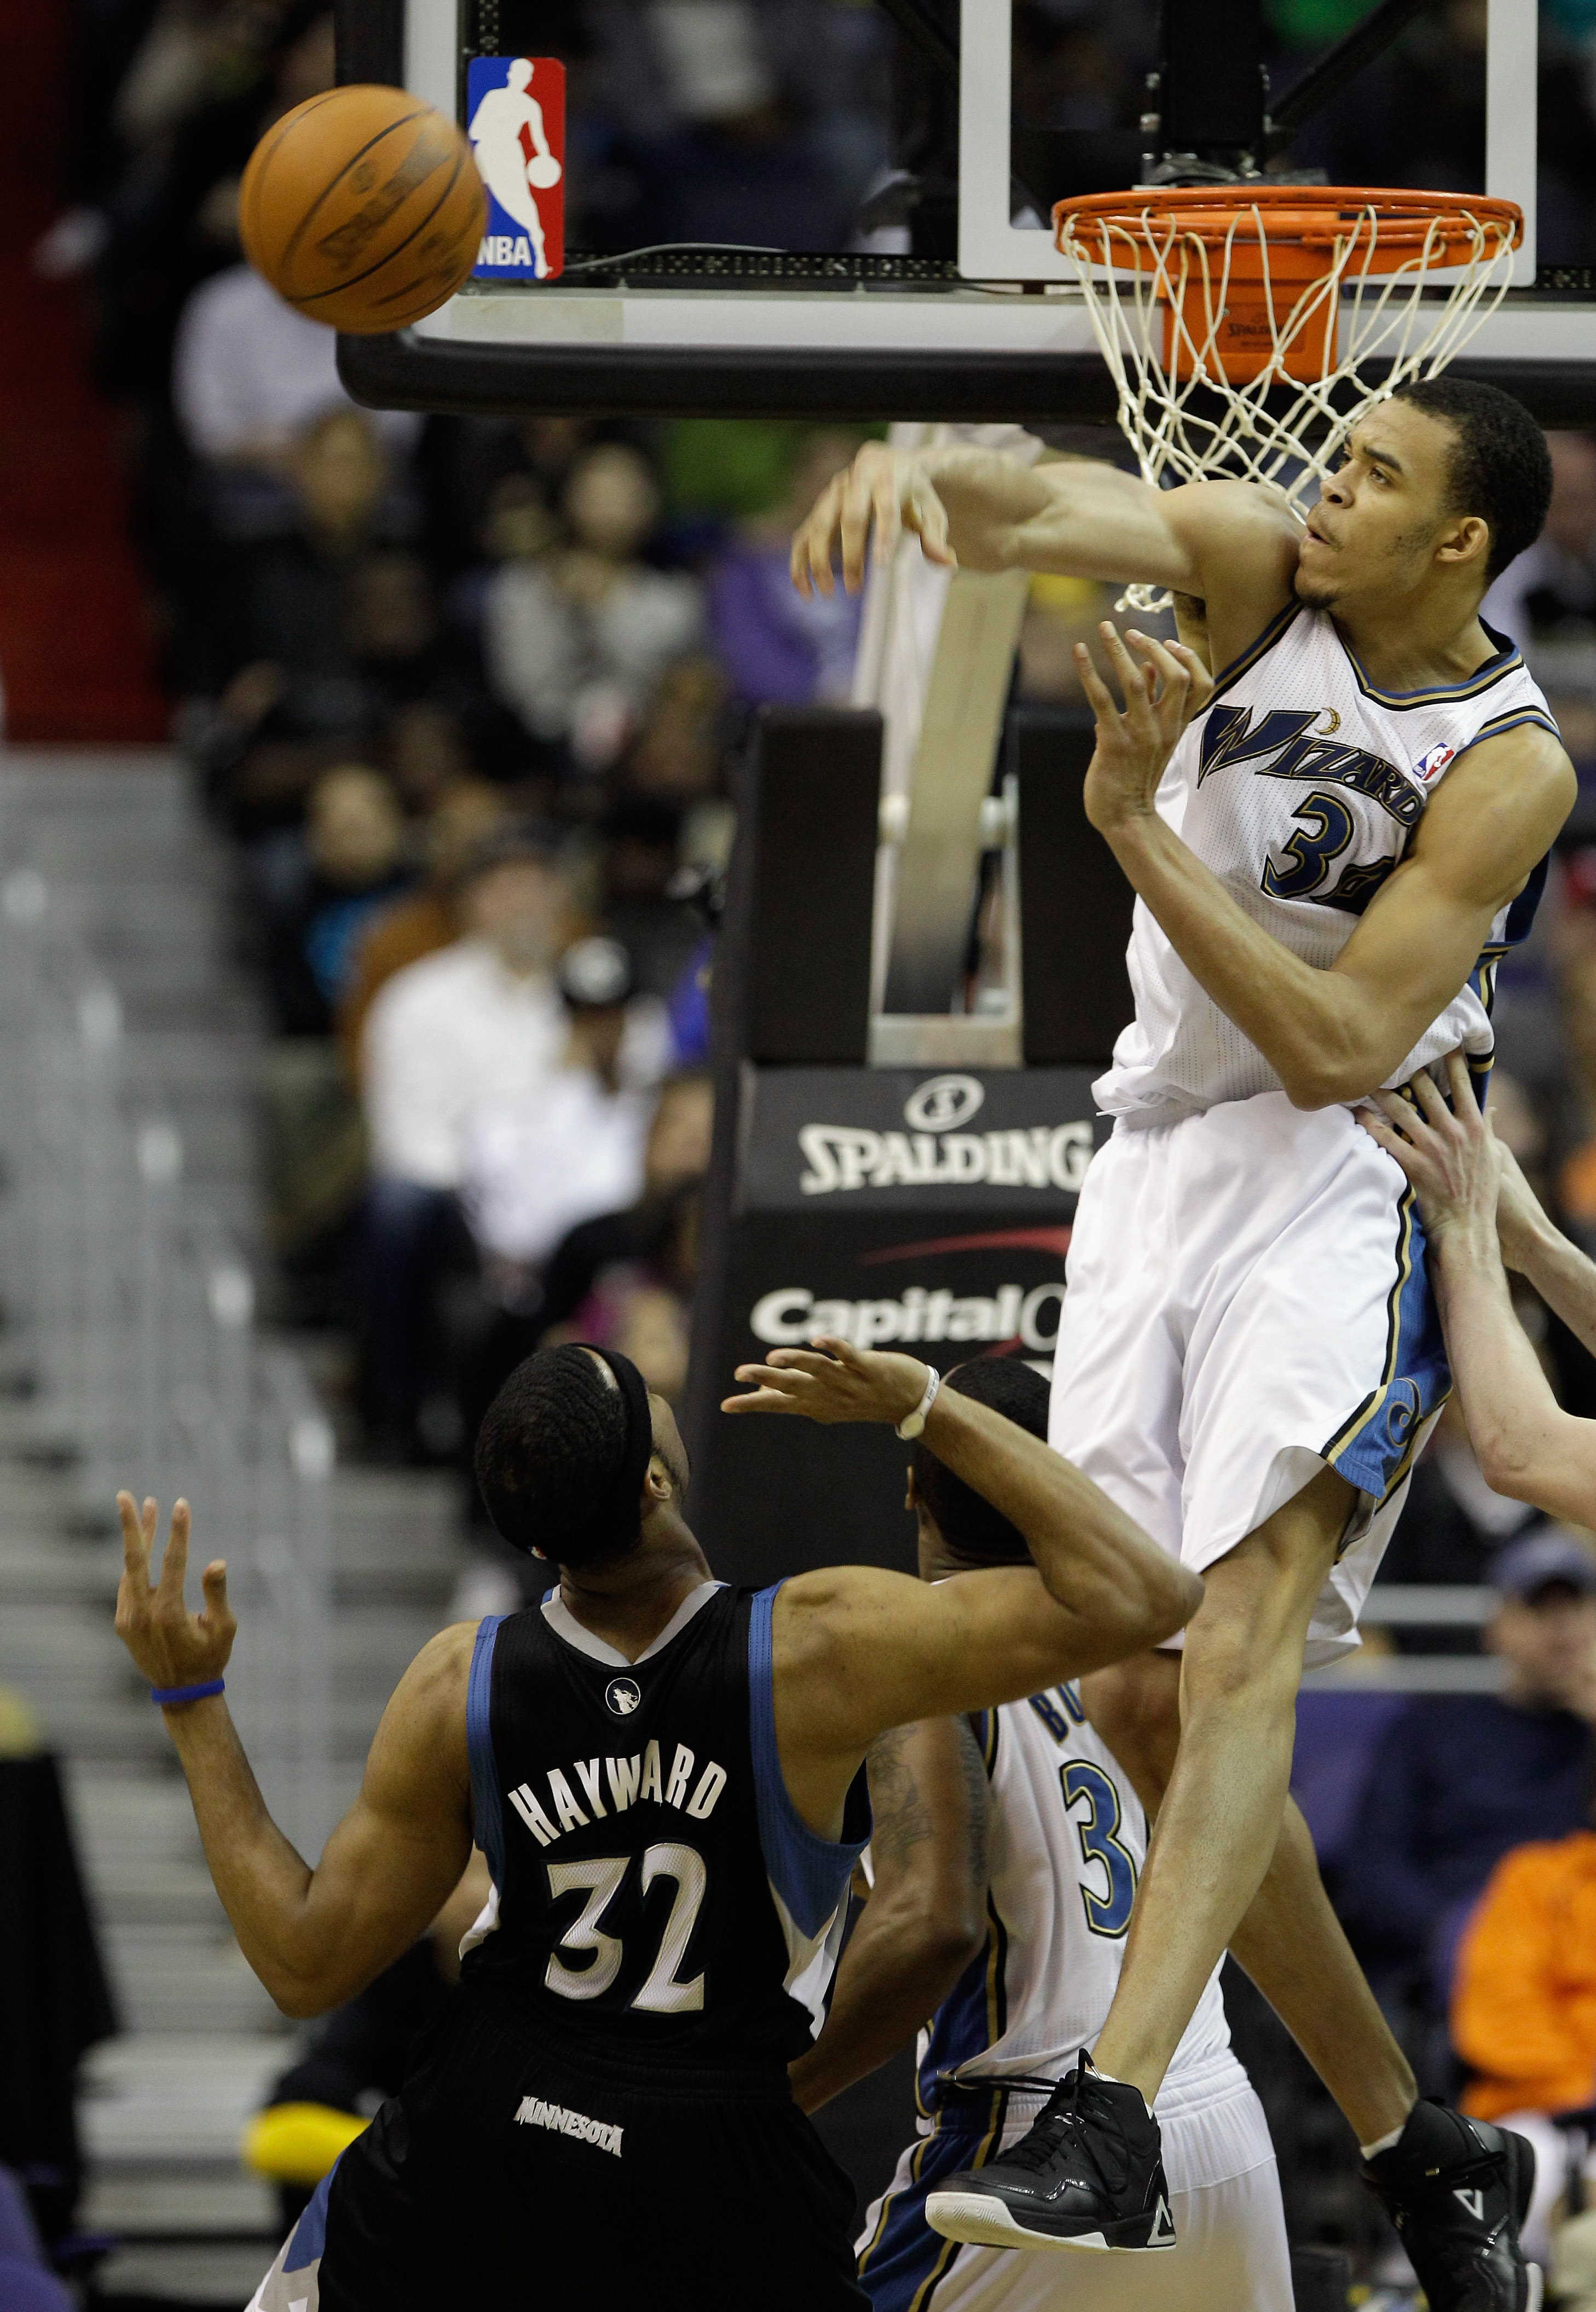 WASHINGTON, DC - MARCH 05:  JaVale McGee #34 of the Washington Wizards blocks a shot by Lazar Hayward #32 of the Minnesota Timberwolves at the Verizon Center on March 5, 2011 in Washington, DC. NOTE TO USER: User expressly acknowledges and agrees that, by